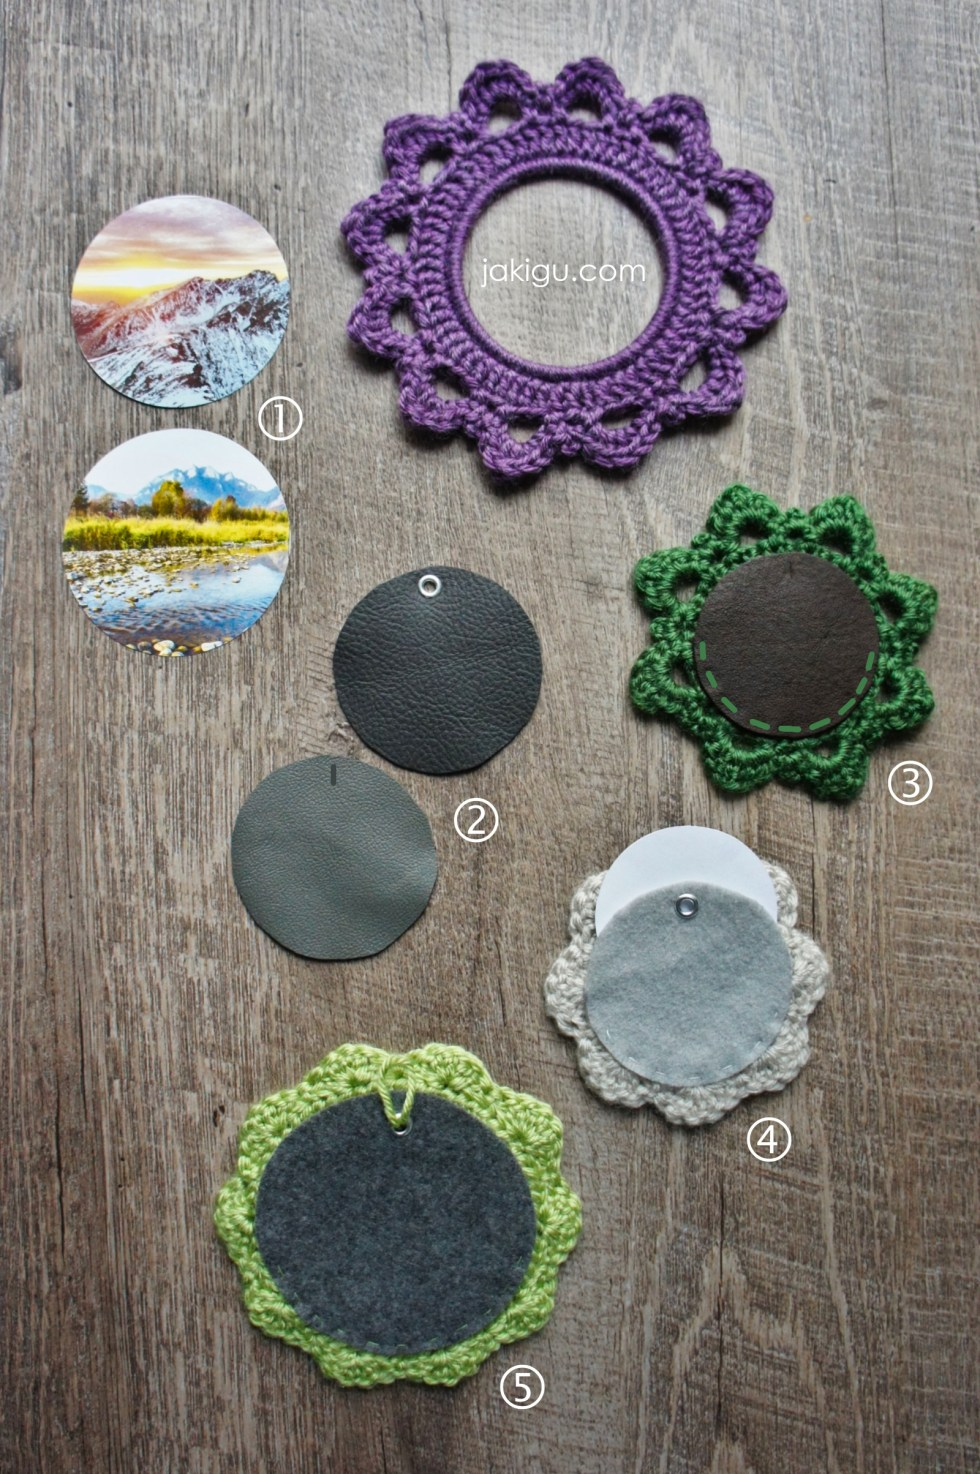 Attaching picture to crochet picture frames / jakigu.com guide